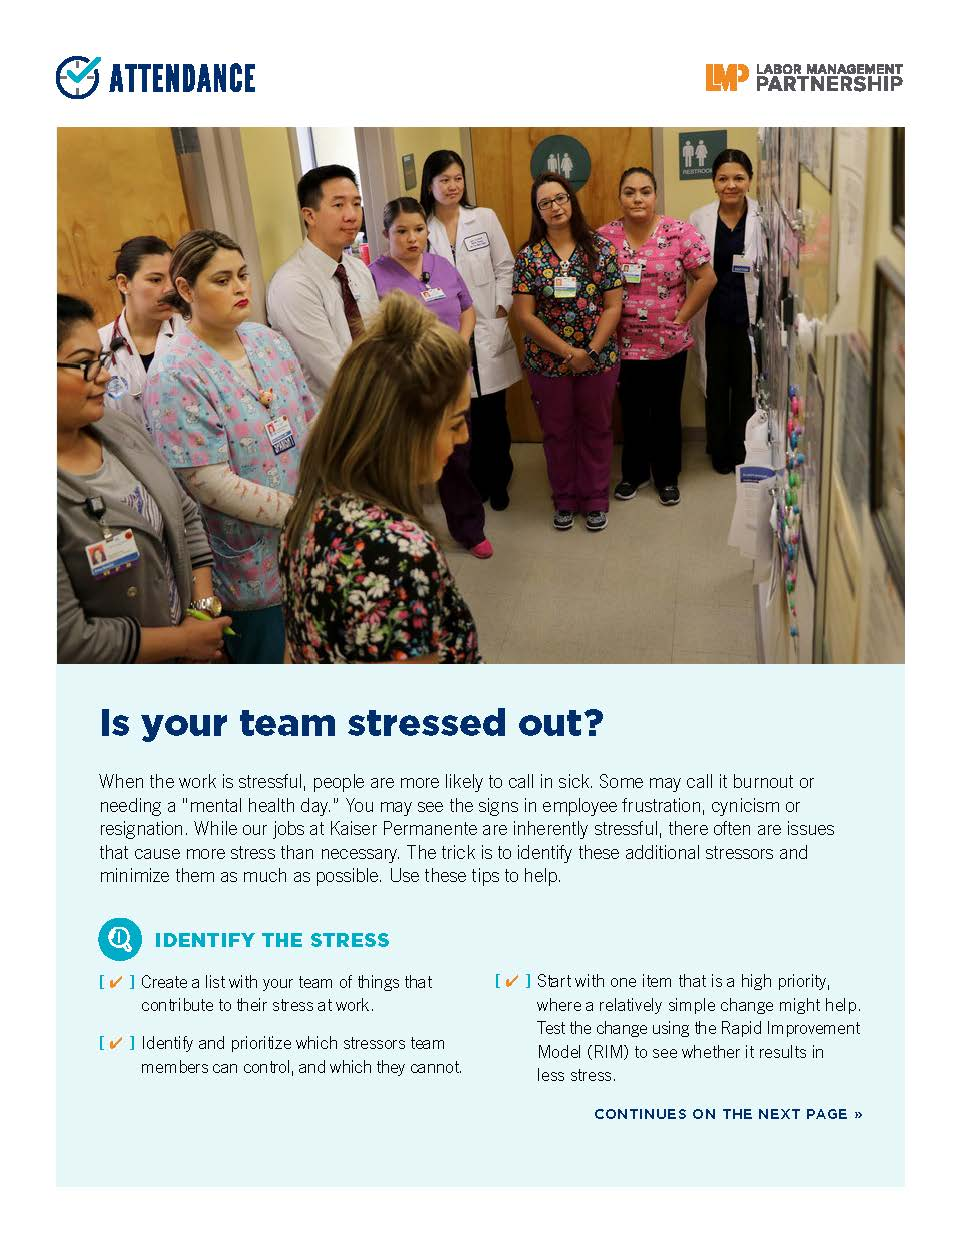 Flier with photo of a group of health care workers, standing together and looking grim